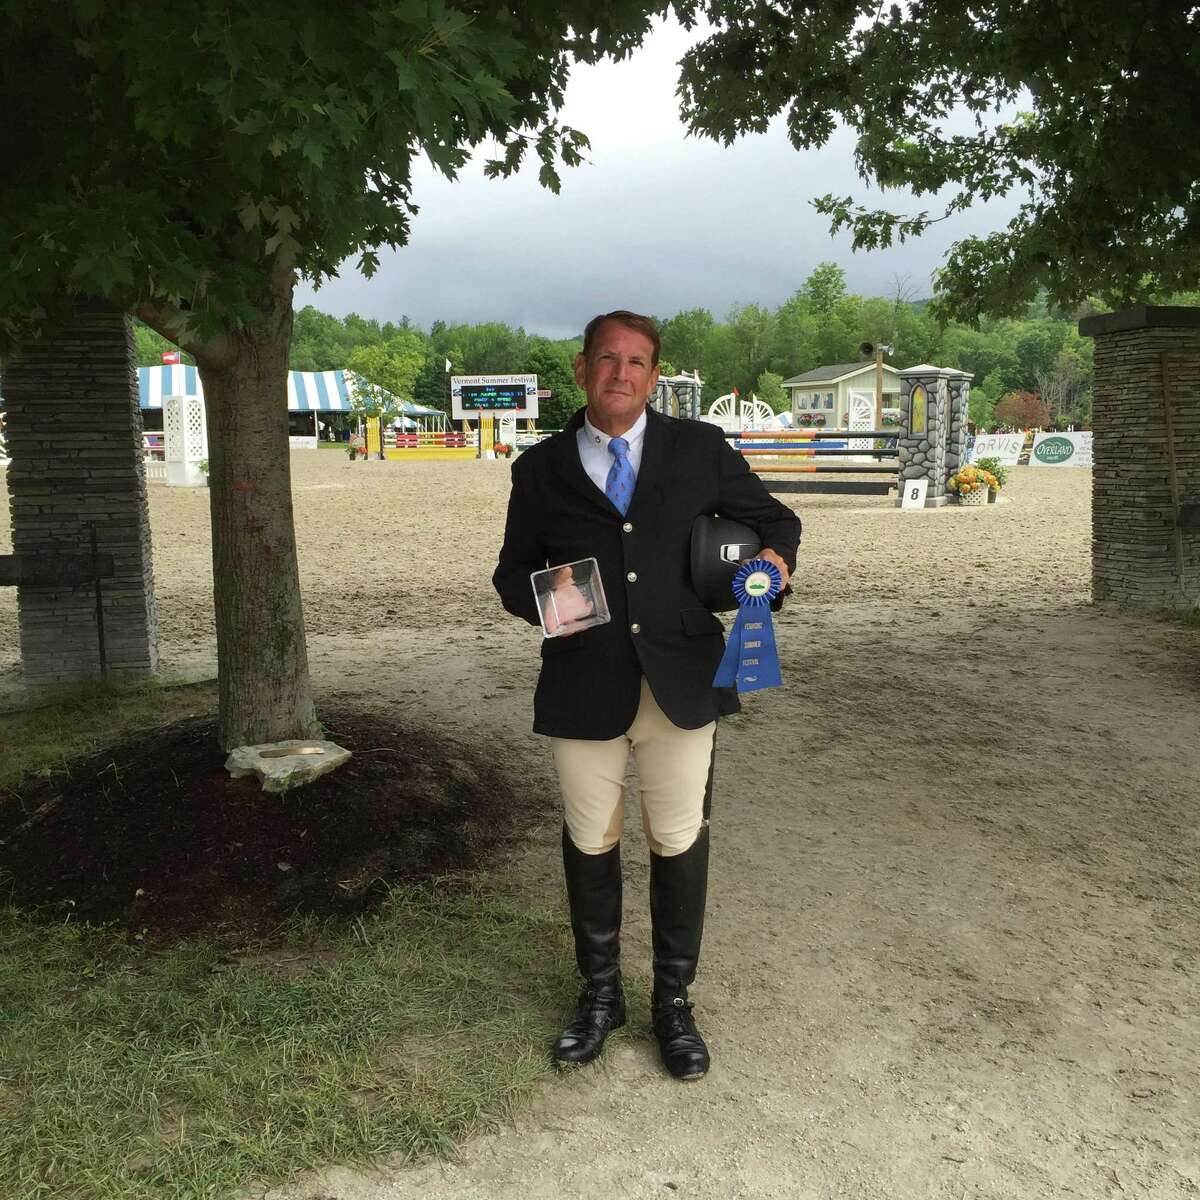 Westport's Bob Rose and Stepping Stone Farm's Rocky recently won the2019 Championship ribbons of both the Child / Adult Jumper Division and the Low Training Jumper division of the Fairfield Westchester Professional Horsemen's Association.